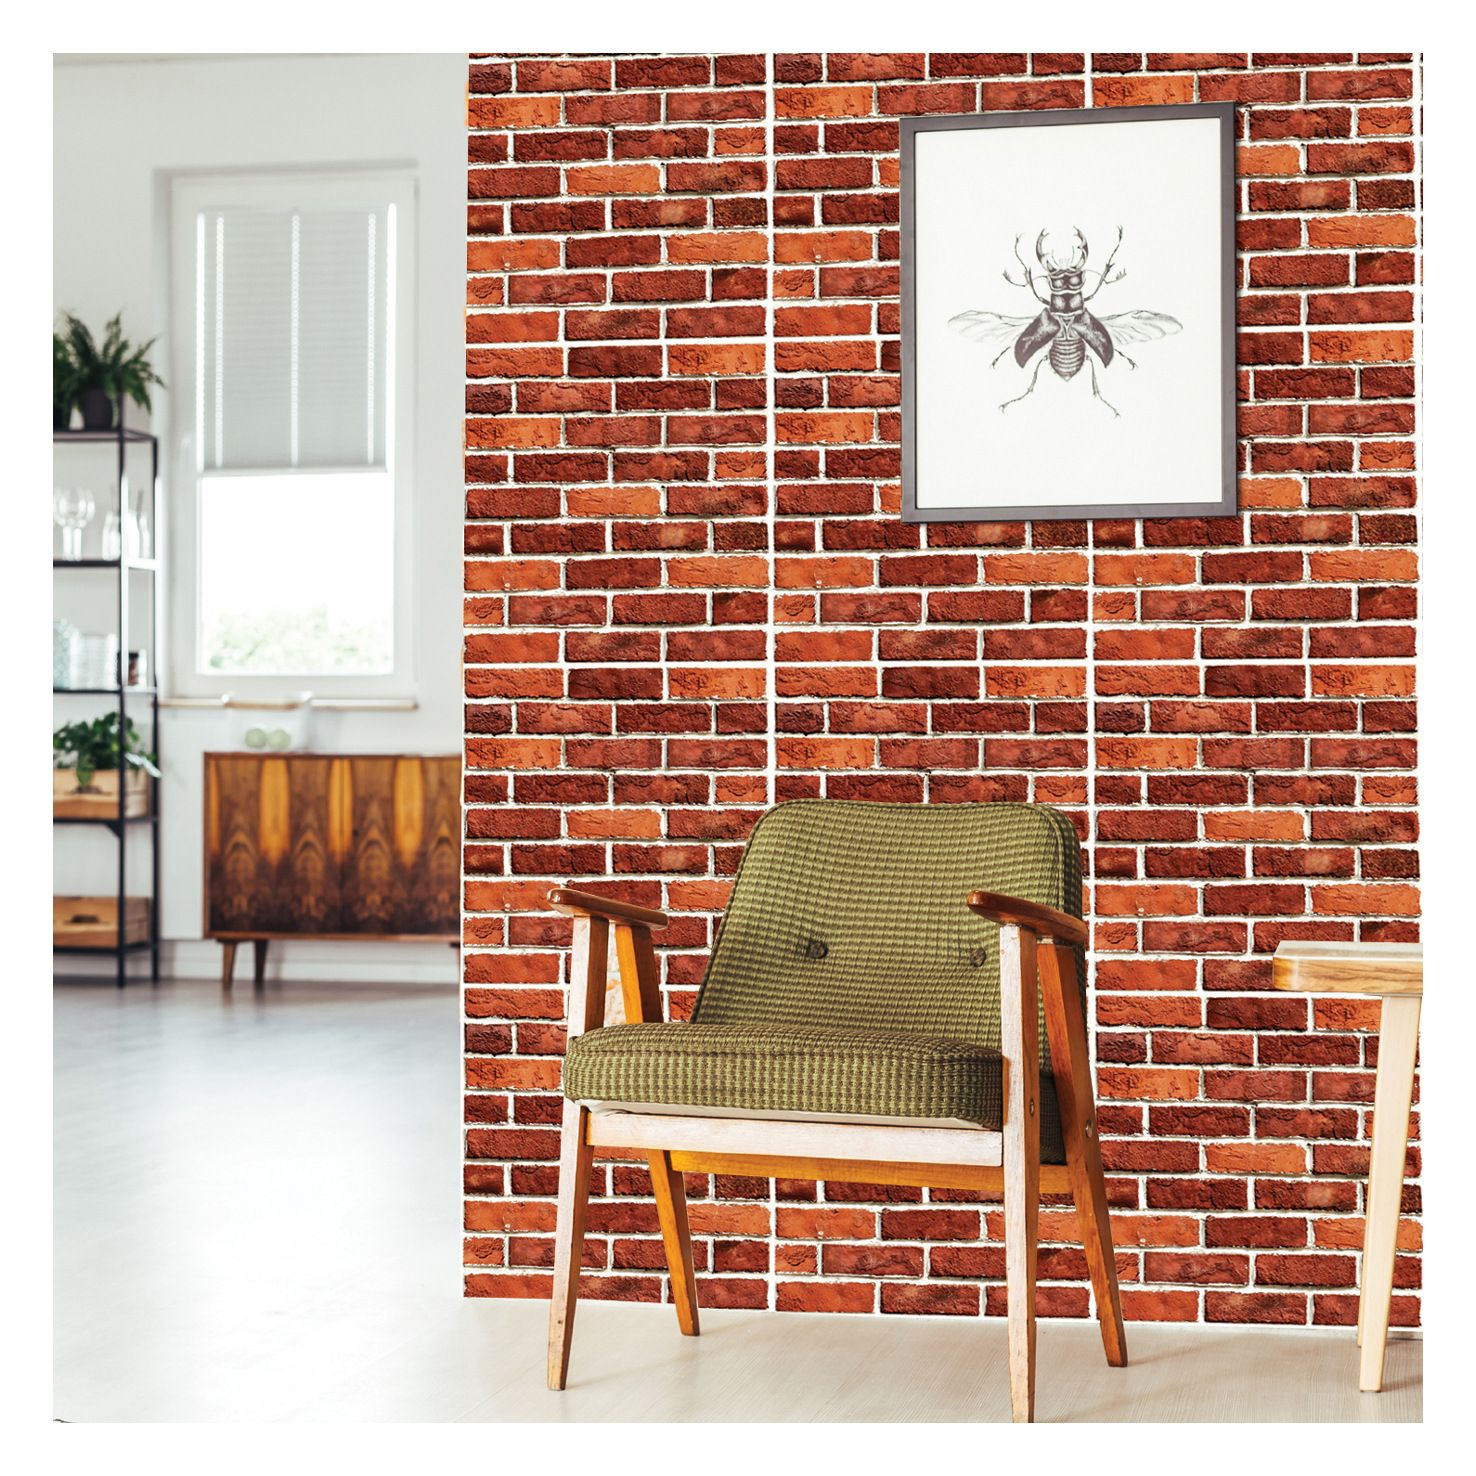 Stone Art 3d Wall Brick Sticker Self Adhesive Removable Wall Du00e9cor For Bathroom Bedroom Living Room Spon Removable Brick Wallpaper Brick Wallpaper 3d Wall